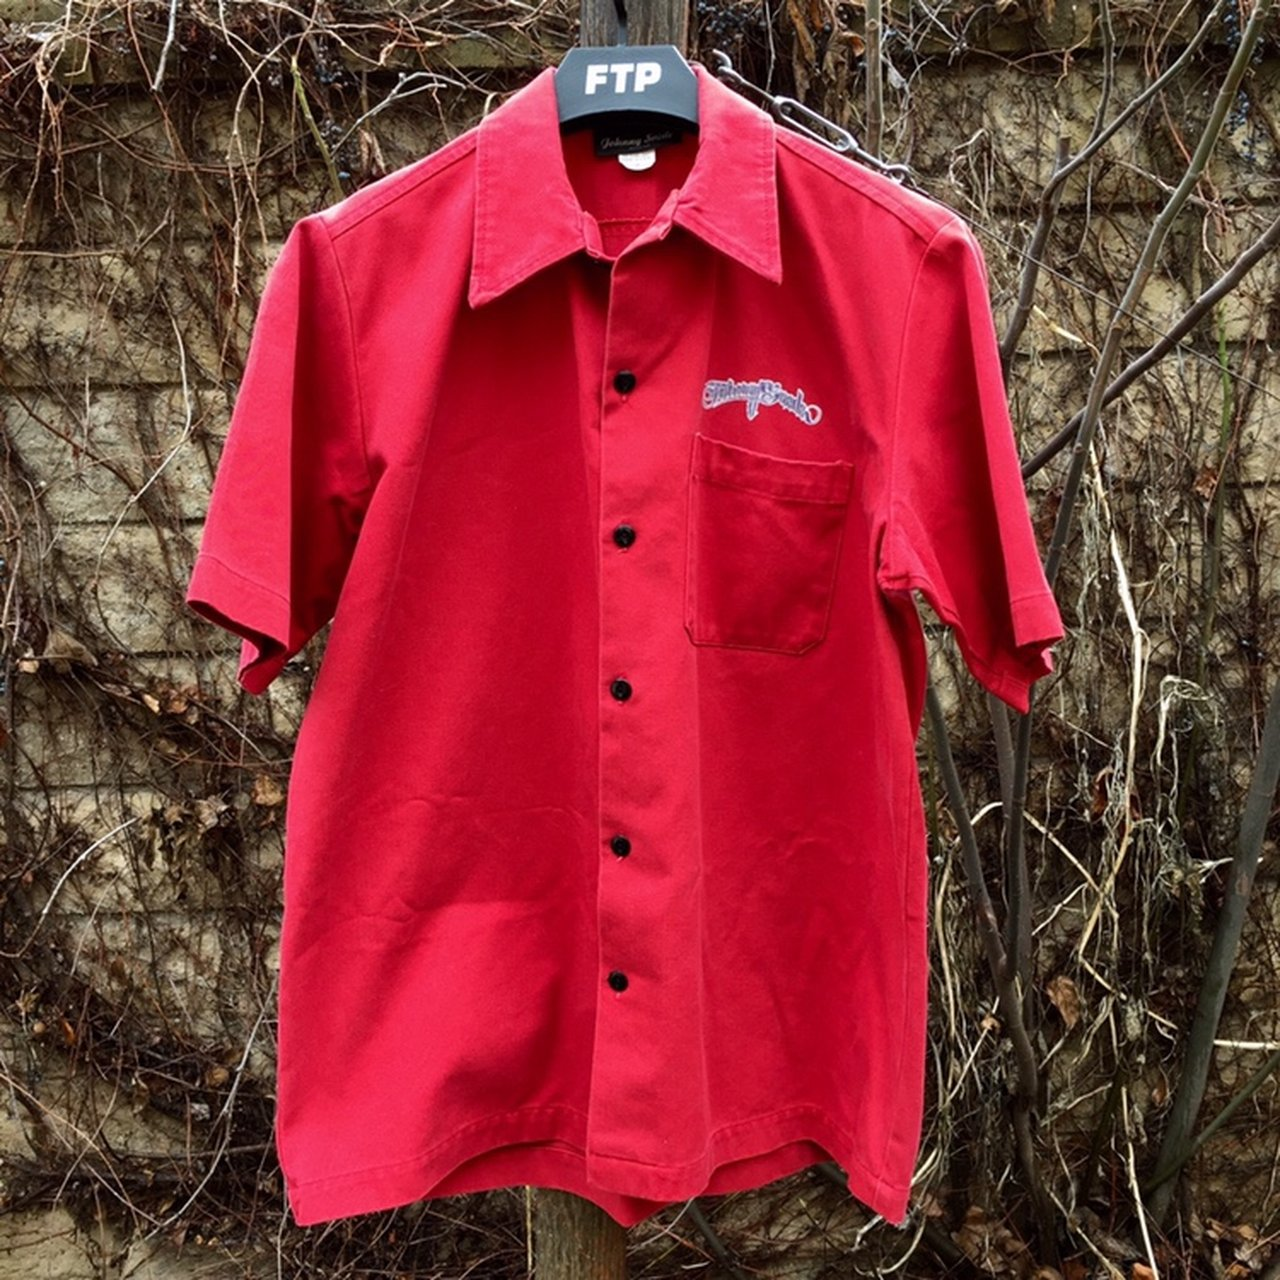 0491ccfc710 Used Work Shirts For Sale - DREAMWORKS